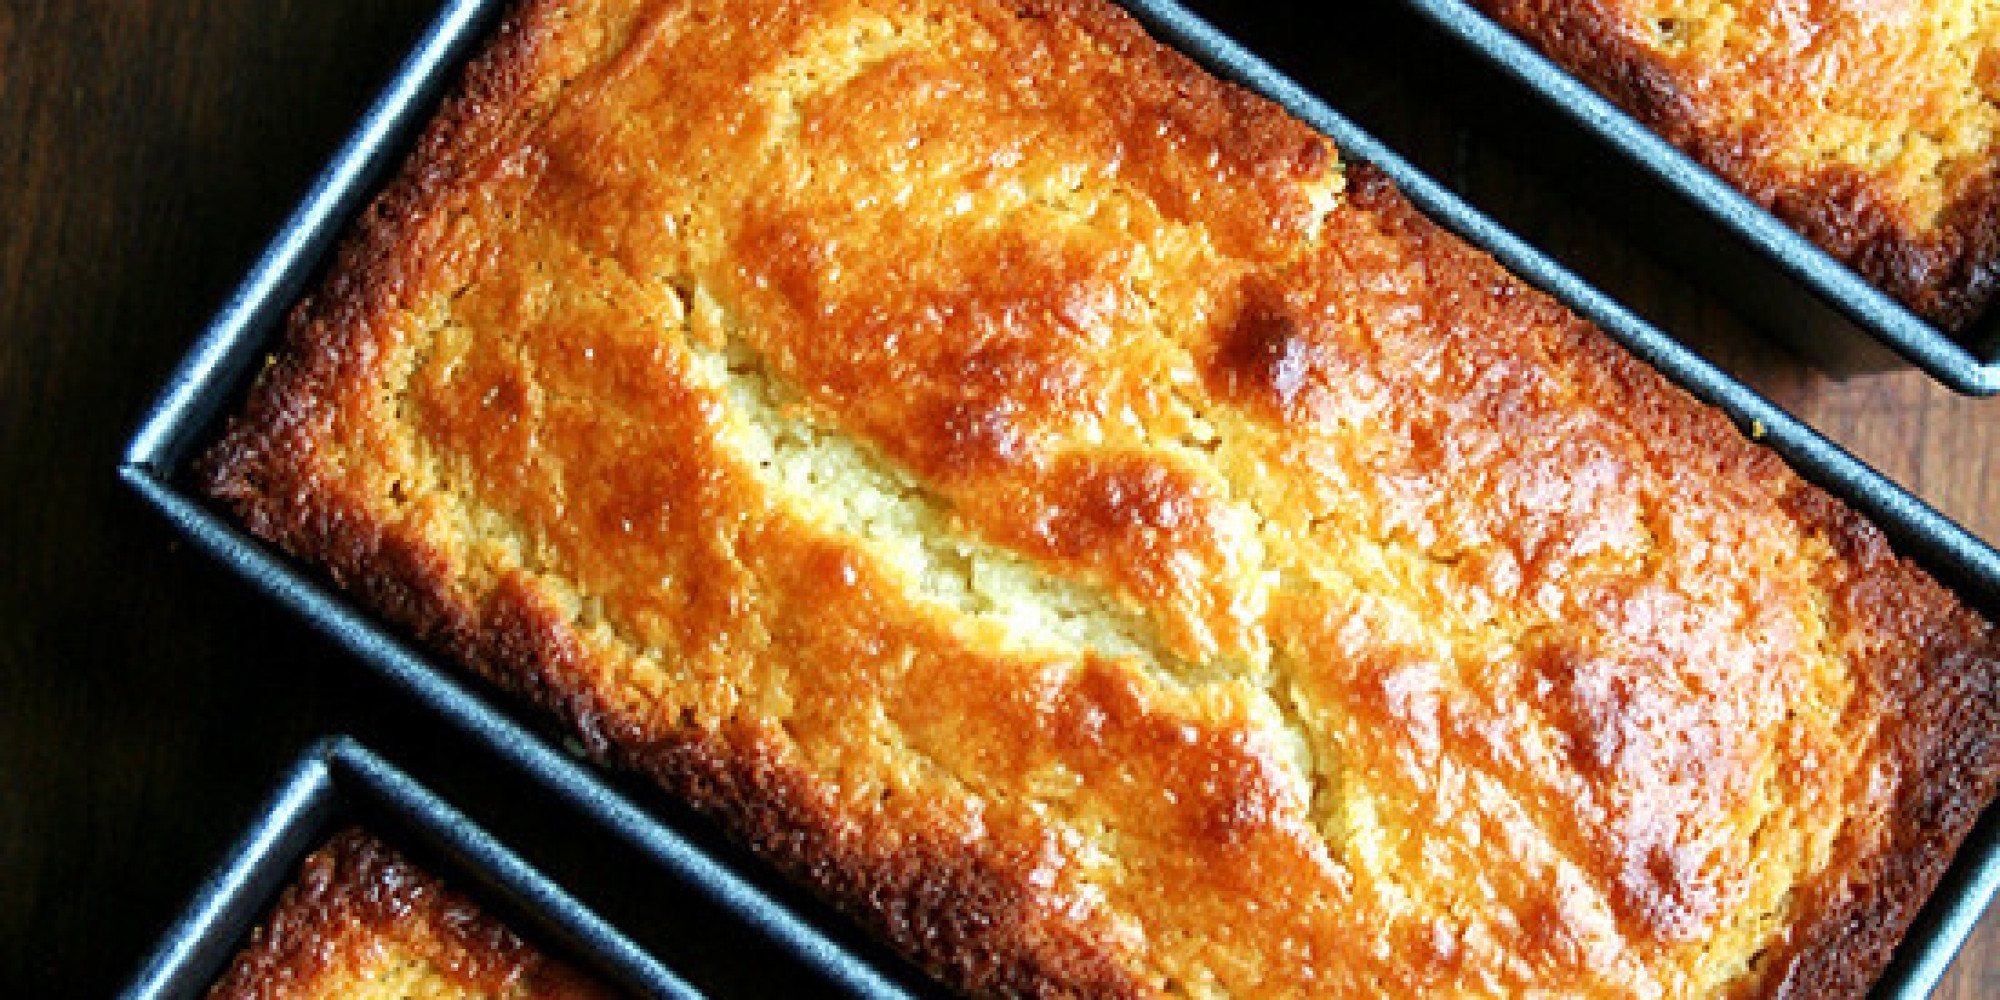 Can Cream Cheese Pound Cake Be Made Without Eggs